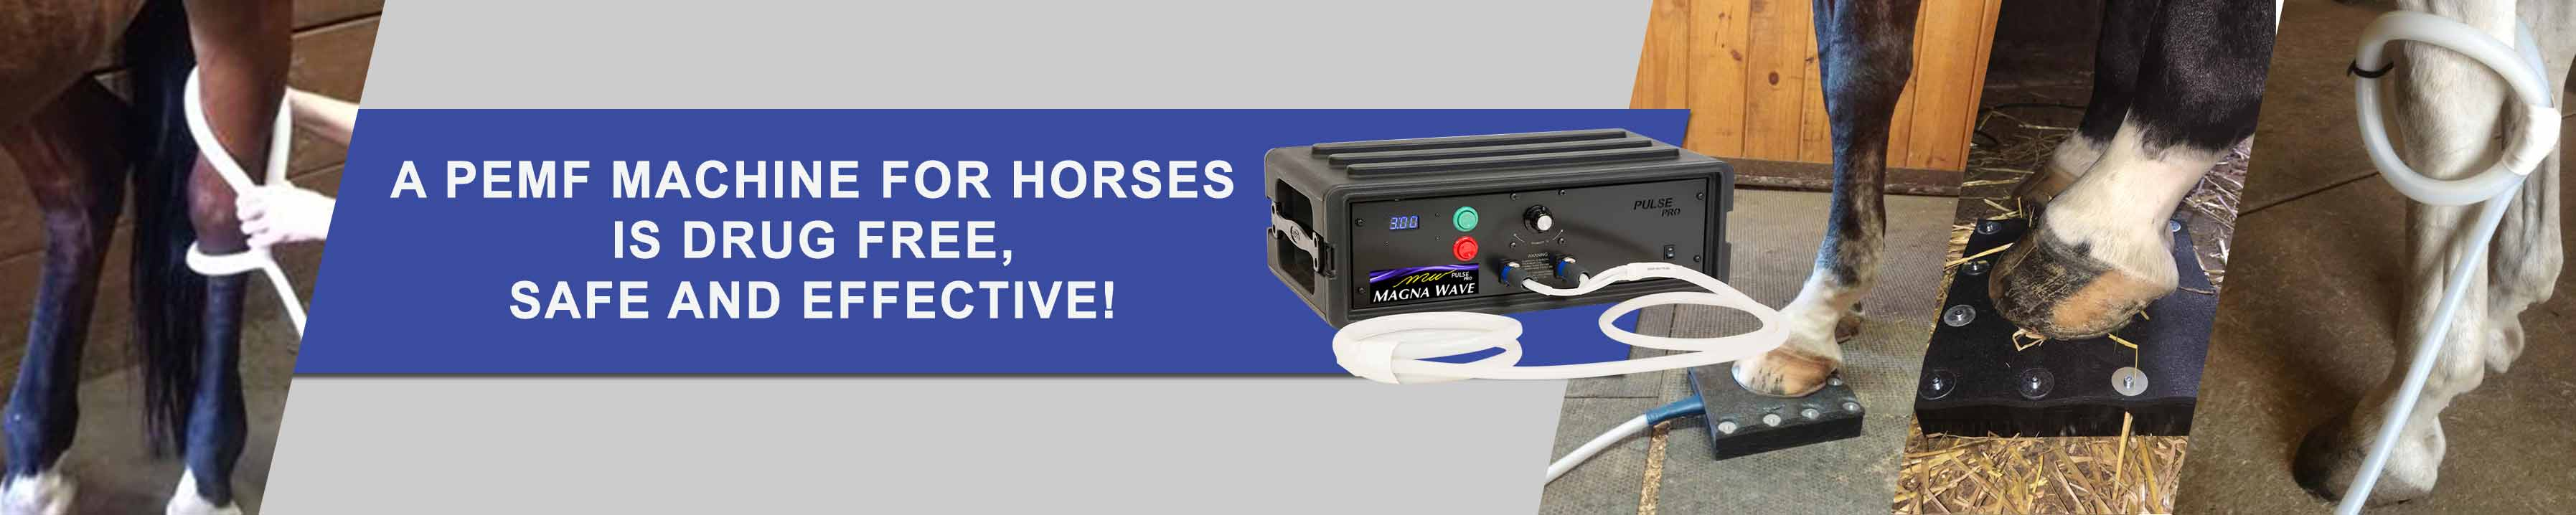 A Magna Wave PEMF Machine for Horses is drug free, safe and effective!